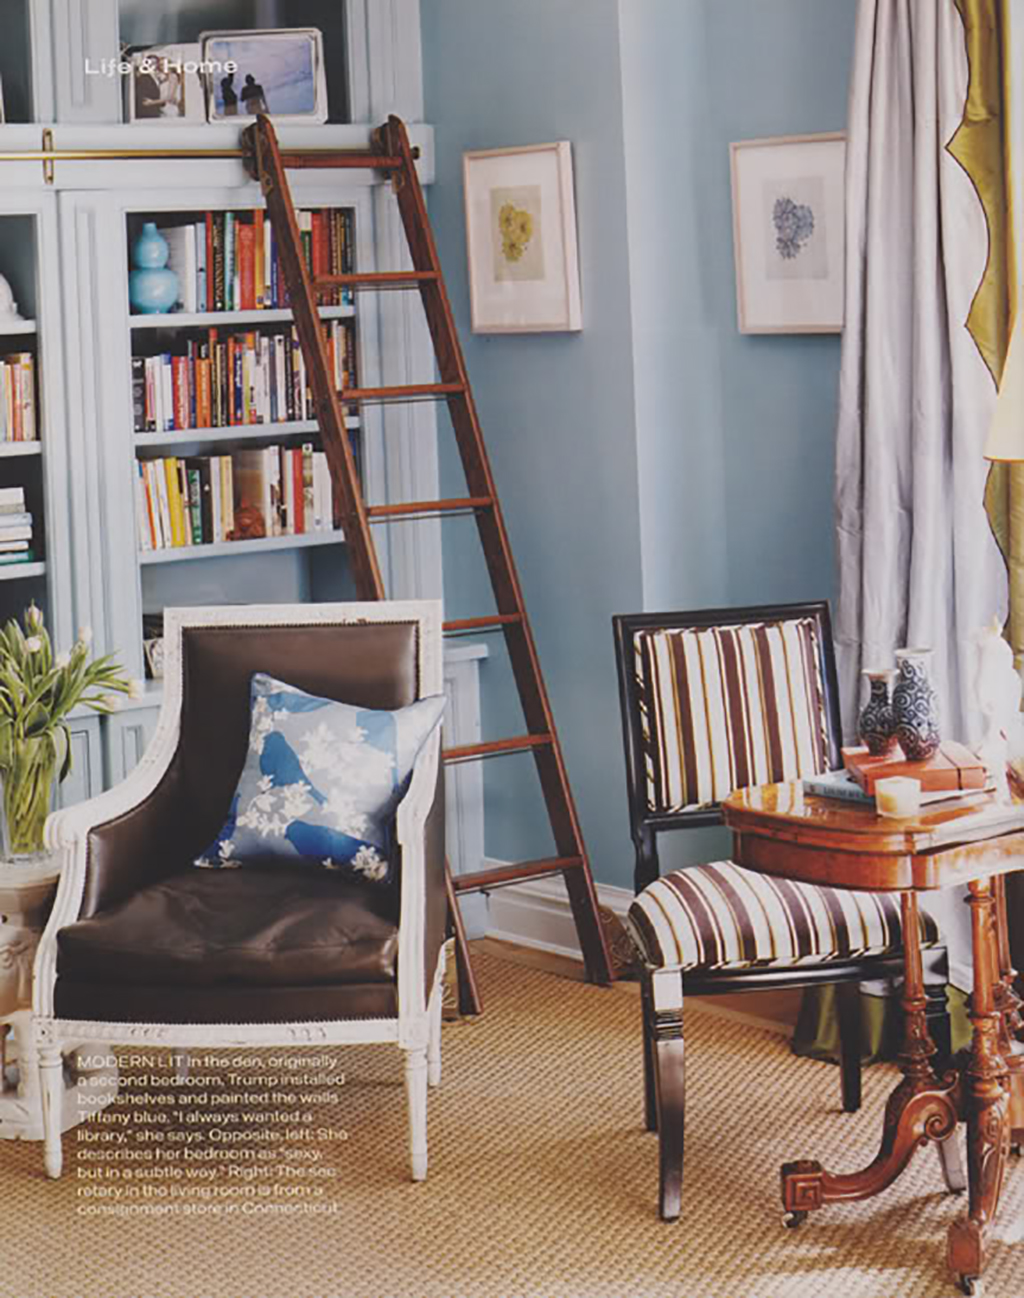 Ivanka Trump's Old Apartment Library via Little Green Notebook